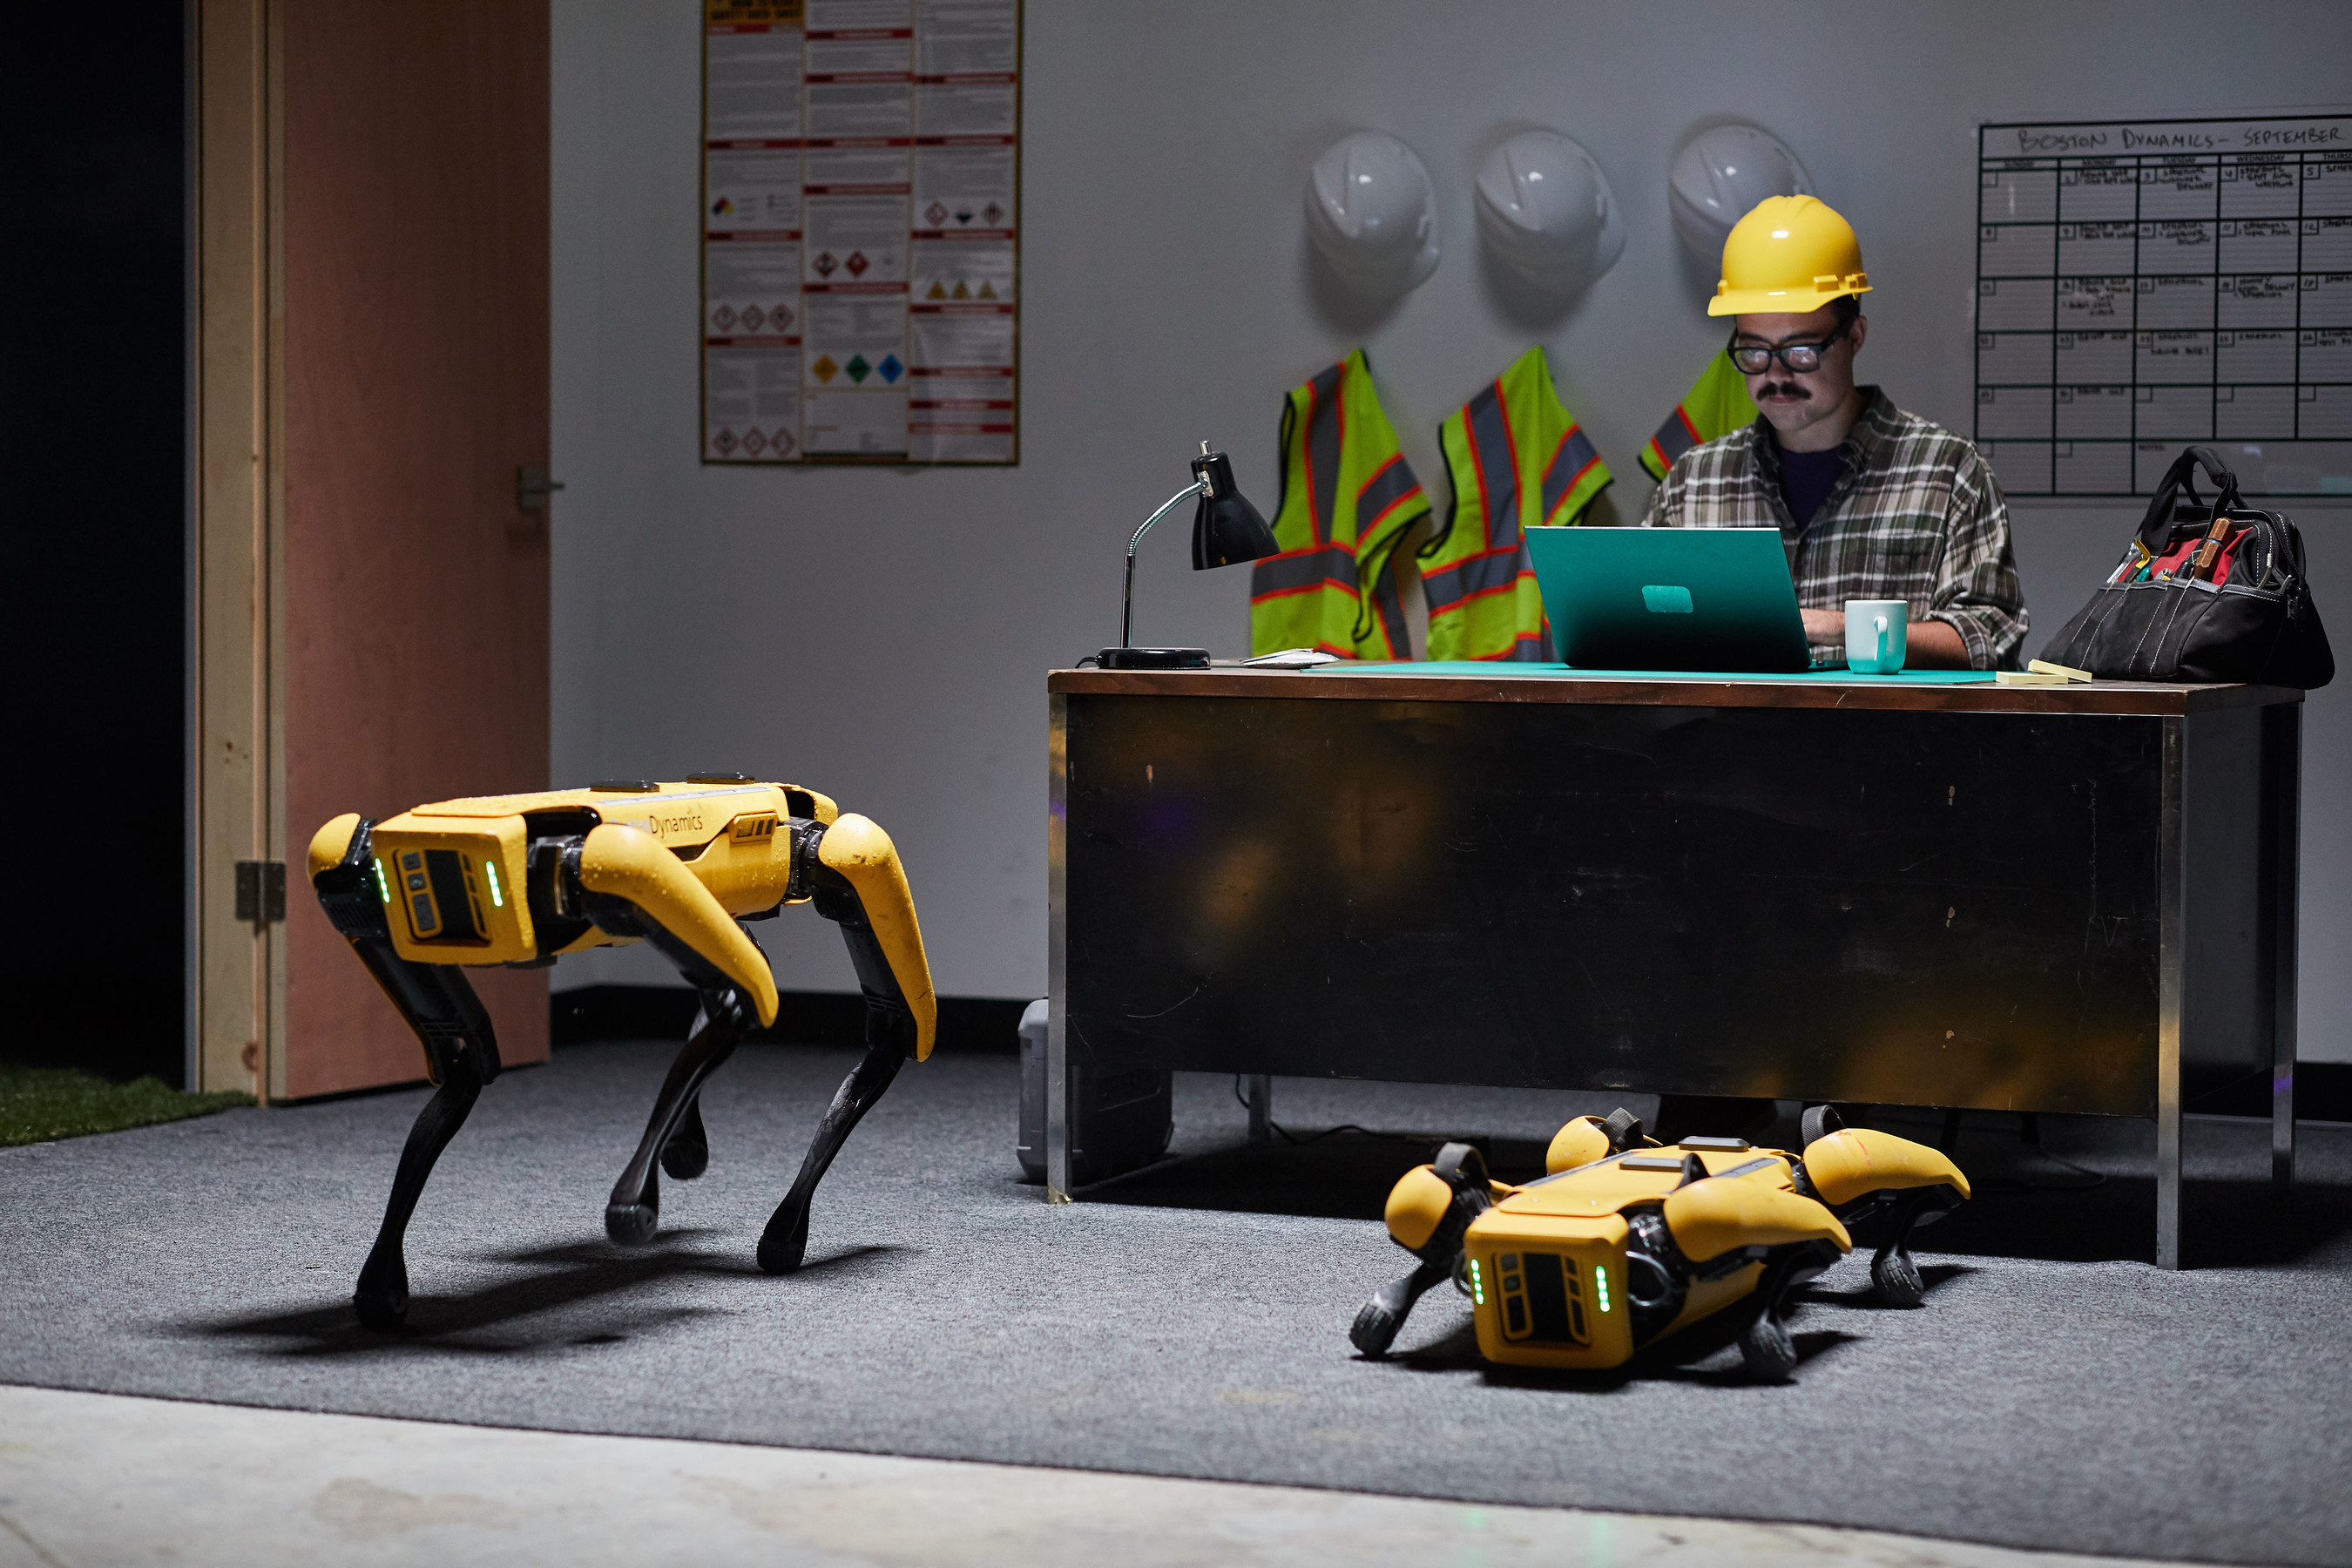 Hyundai acquires robotics company Boston Dynamics in $1.1 billion deal